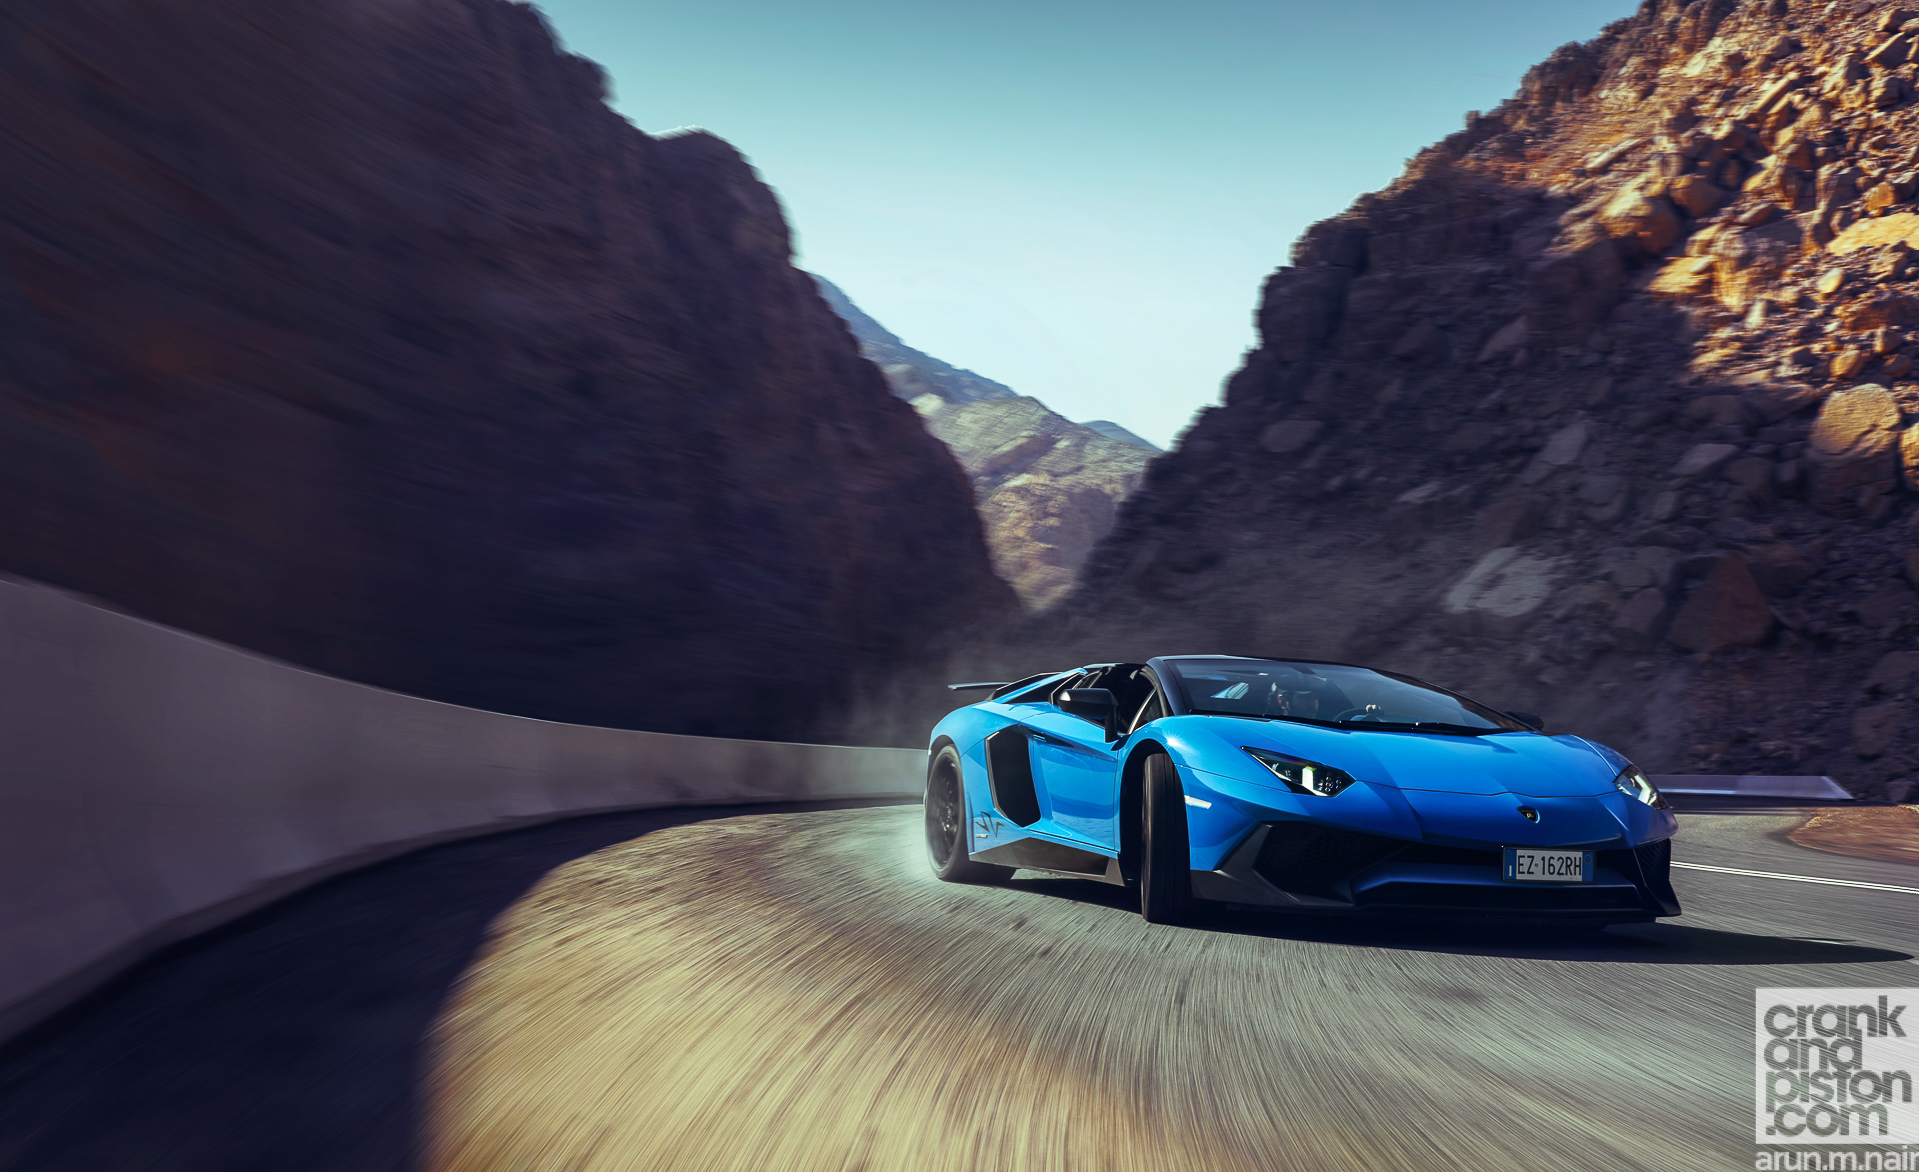 Lamborghini Aventador SV Roadster WALLPAPERS crankandpiston-4